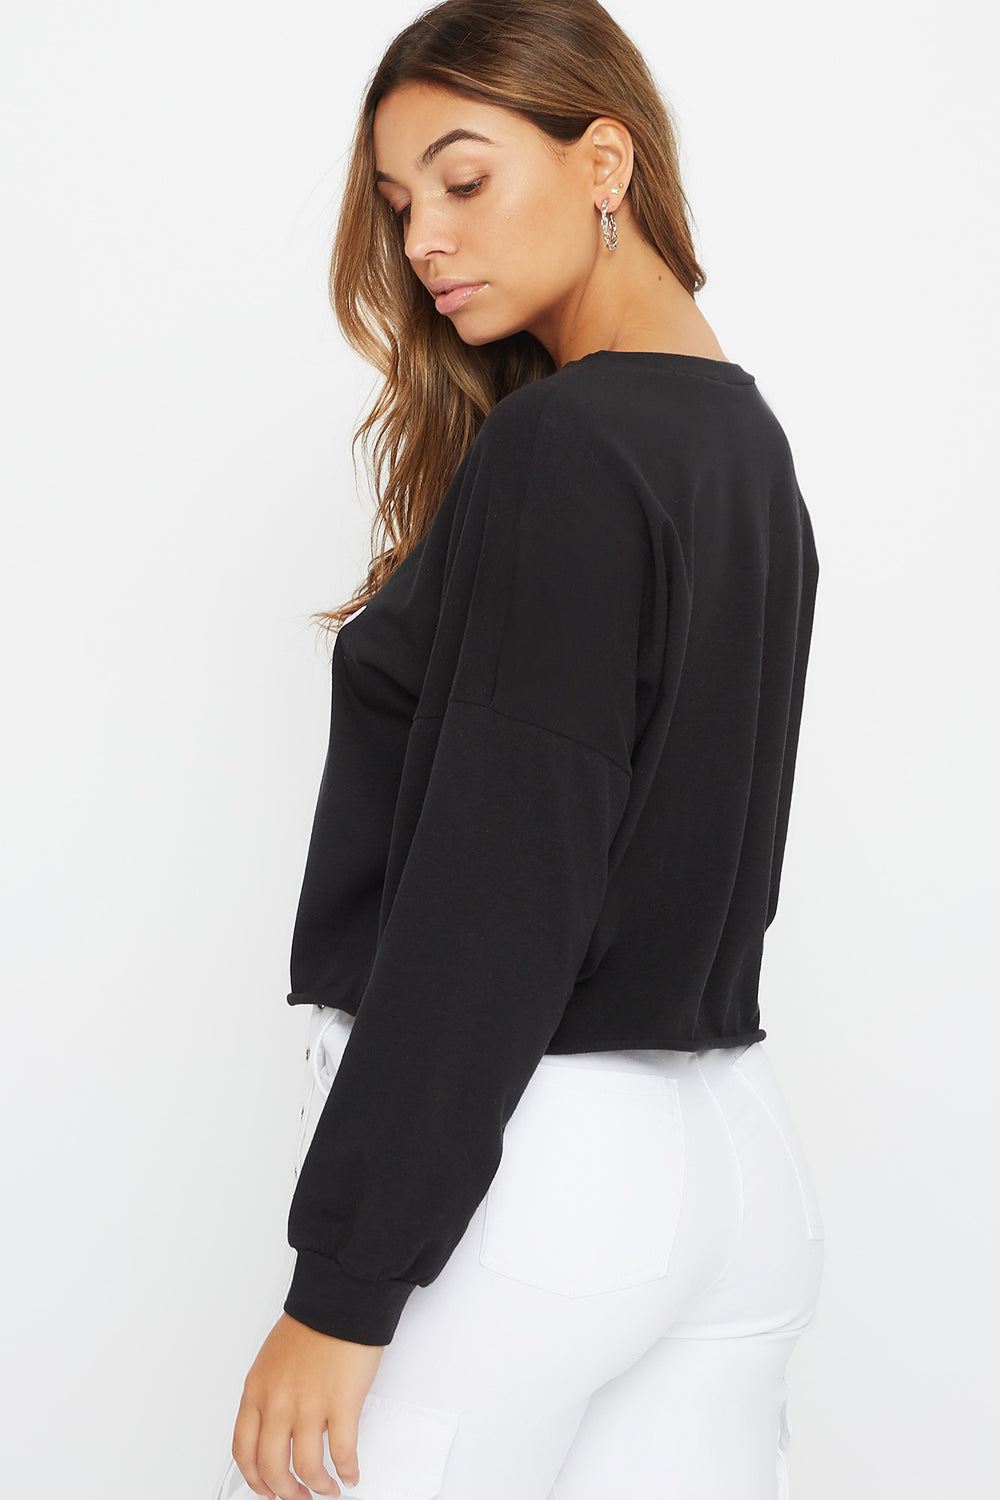 Oversized Graphic Long Sleeve Black